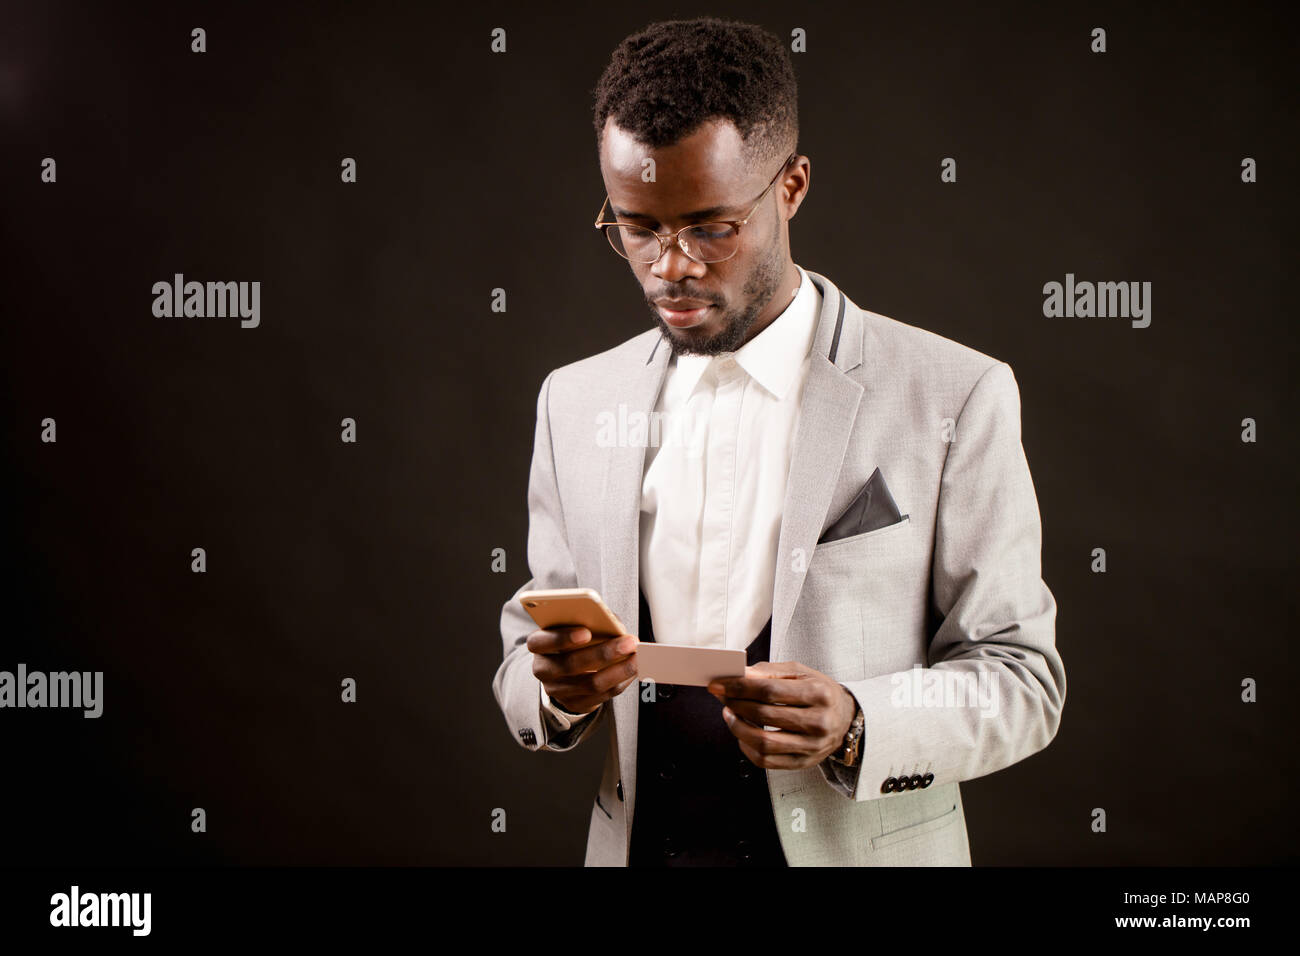 african man holding sheet of paper and smart phone and dialing a number - Stock Image